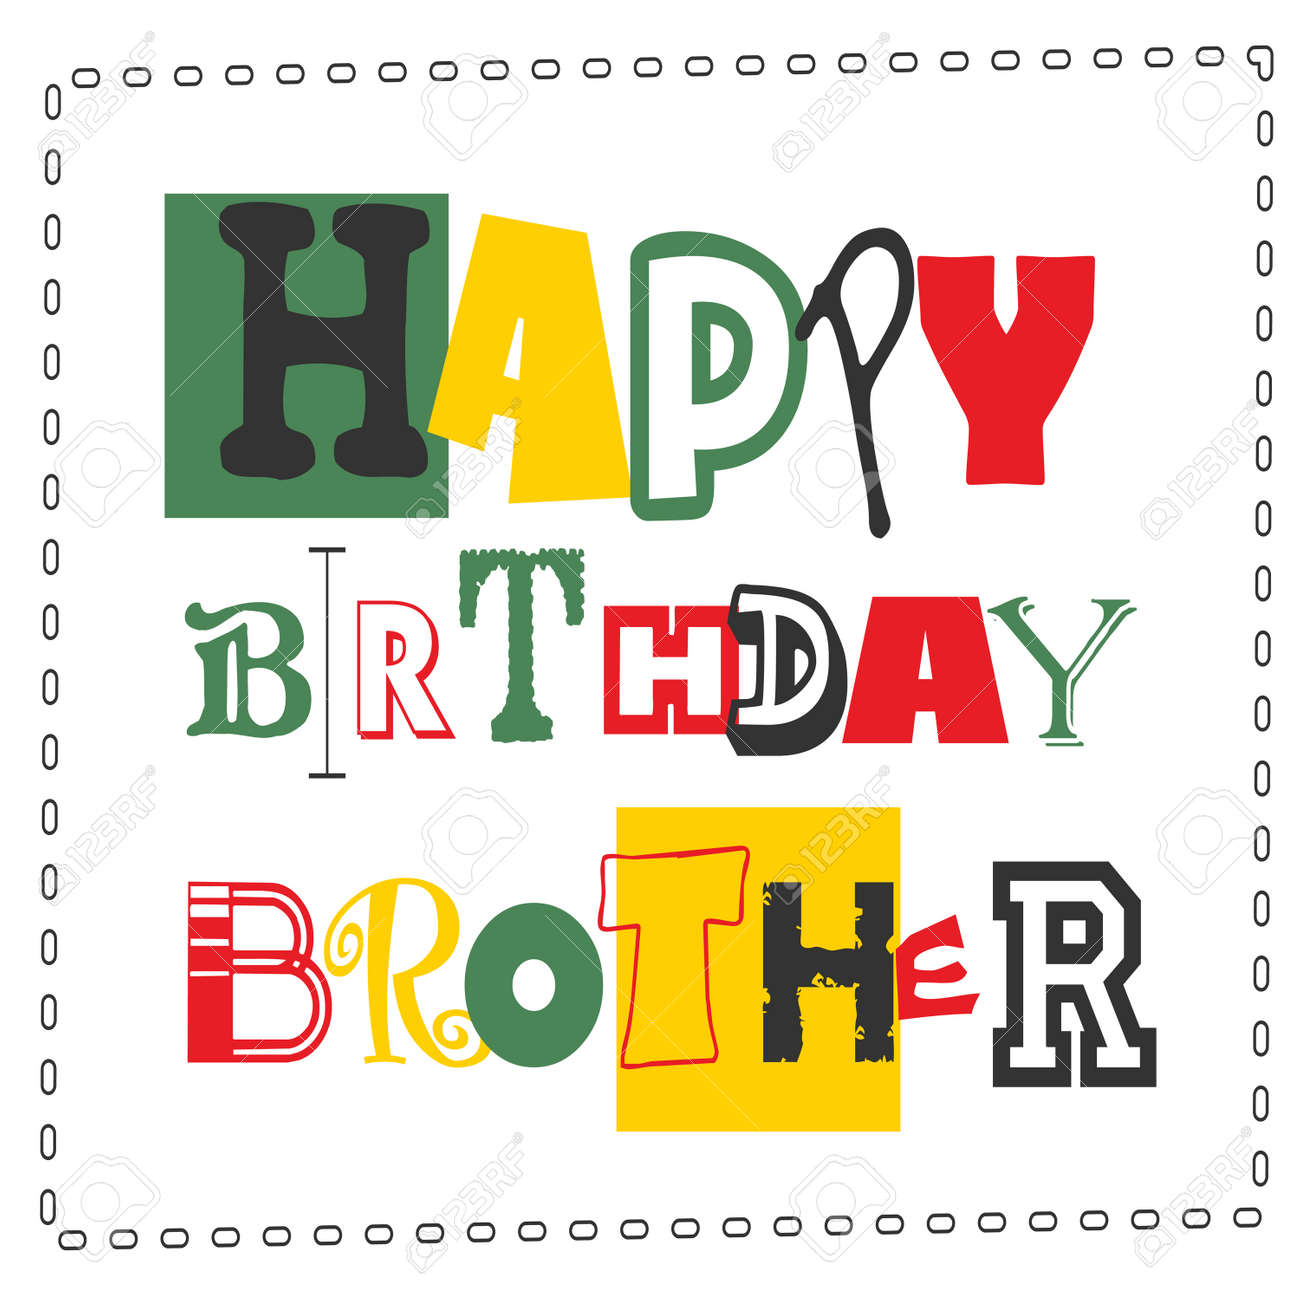 happy birthday cardhappy birthday brother vector illustration stock vector 57012644